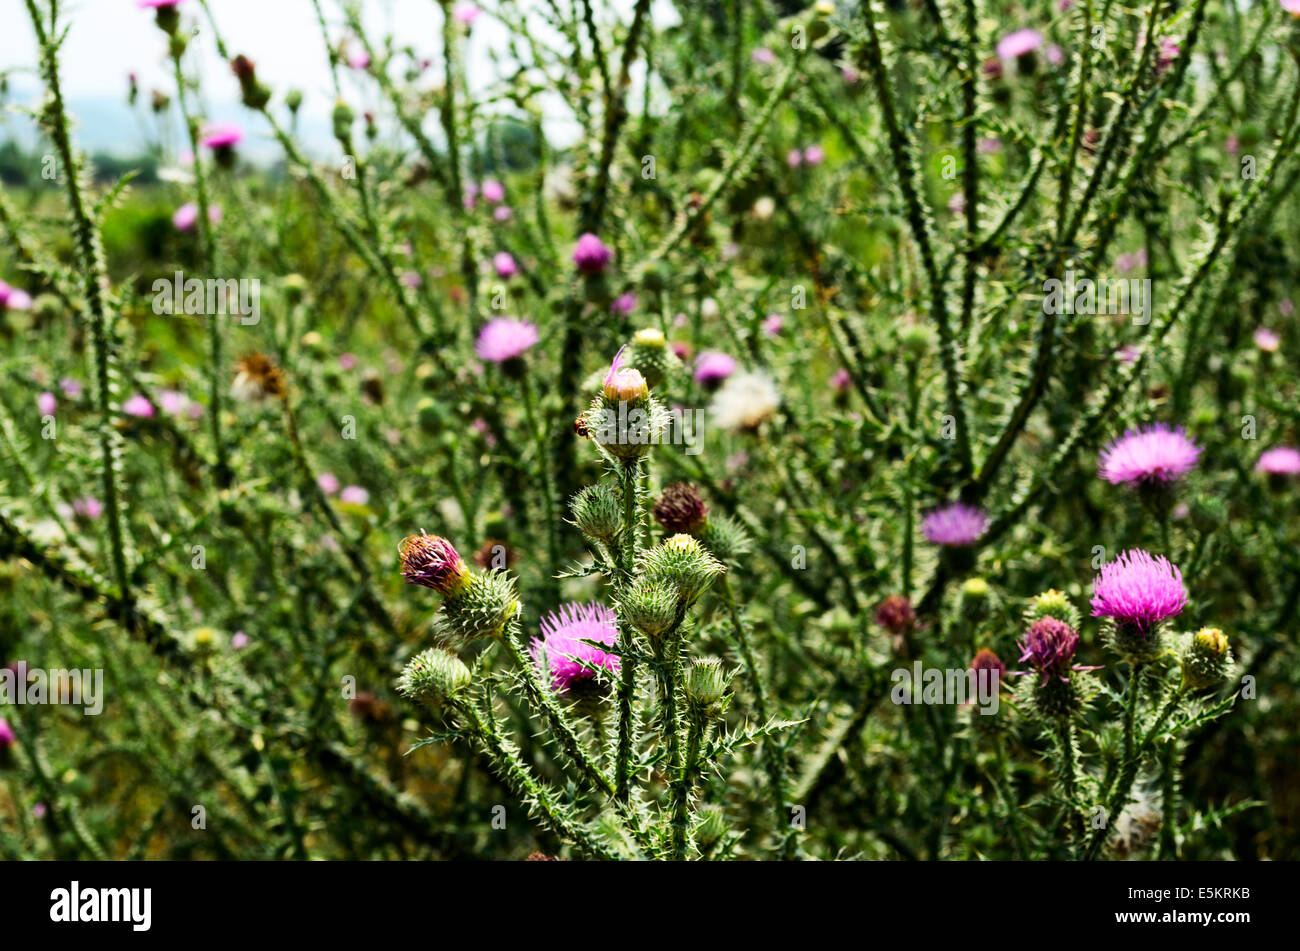 Plumeless Thistle Blossom Close-Up Stock Photo